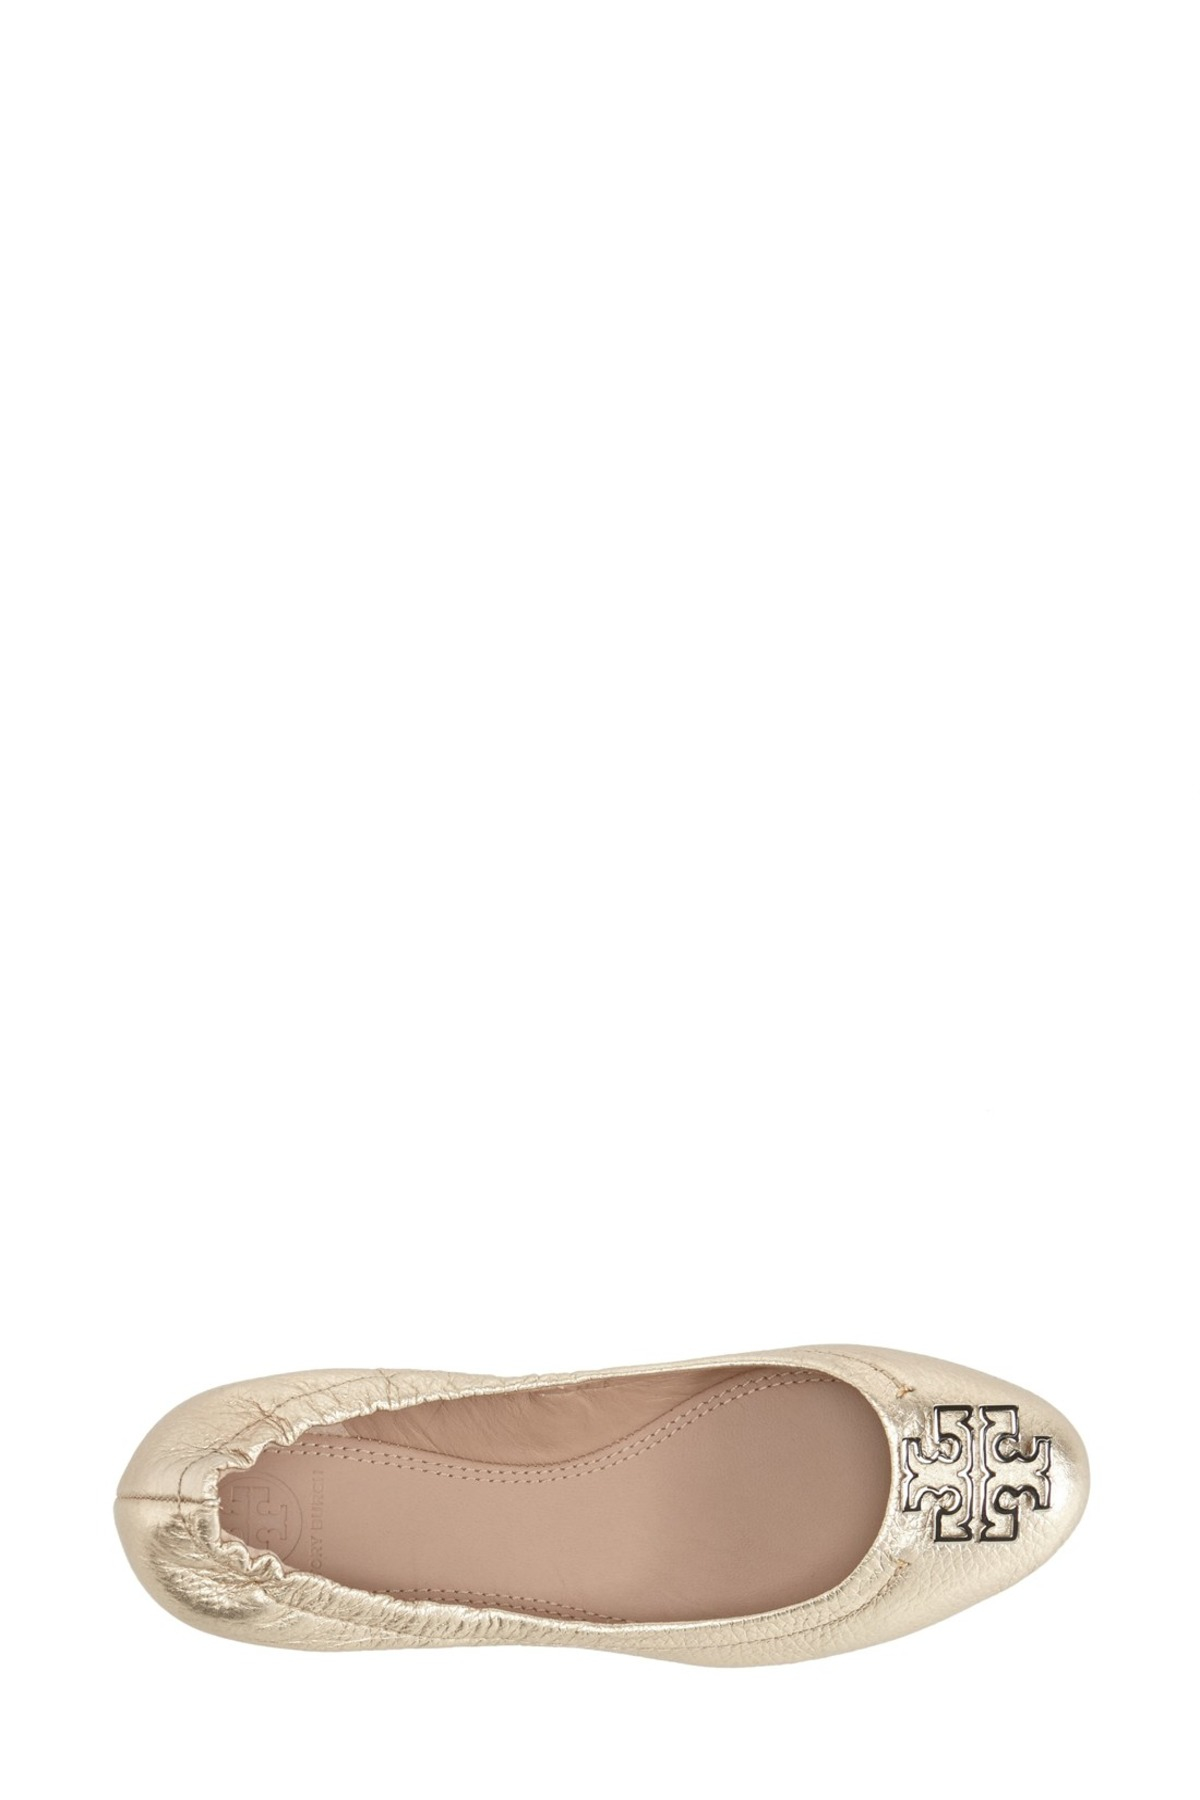 6cd4e2403 Gallery. Previously sold at  Nordstrom Rack · Women s Lace Up Ballet Flats  ...